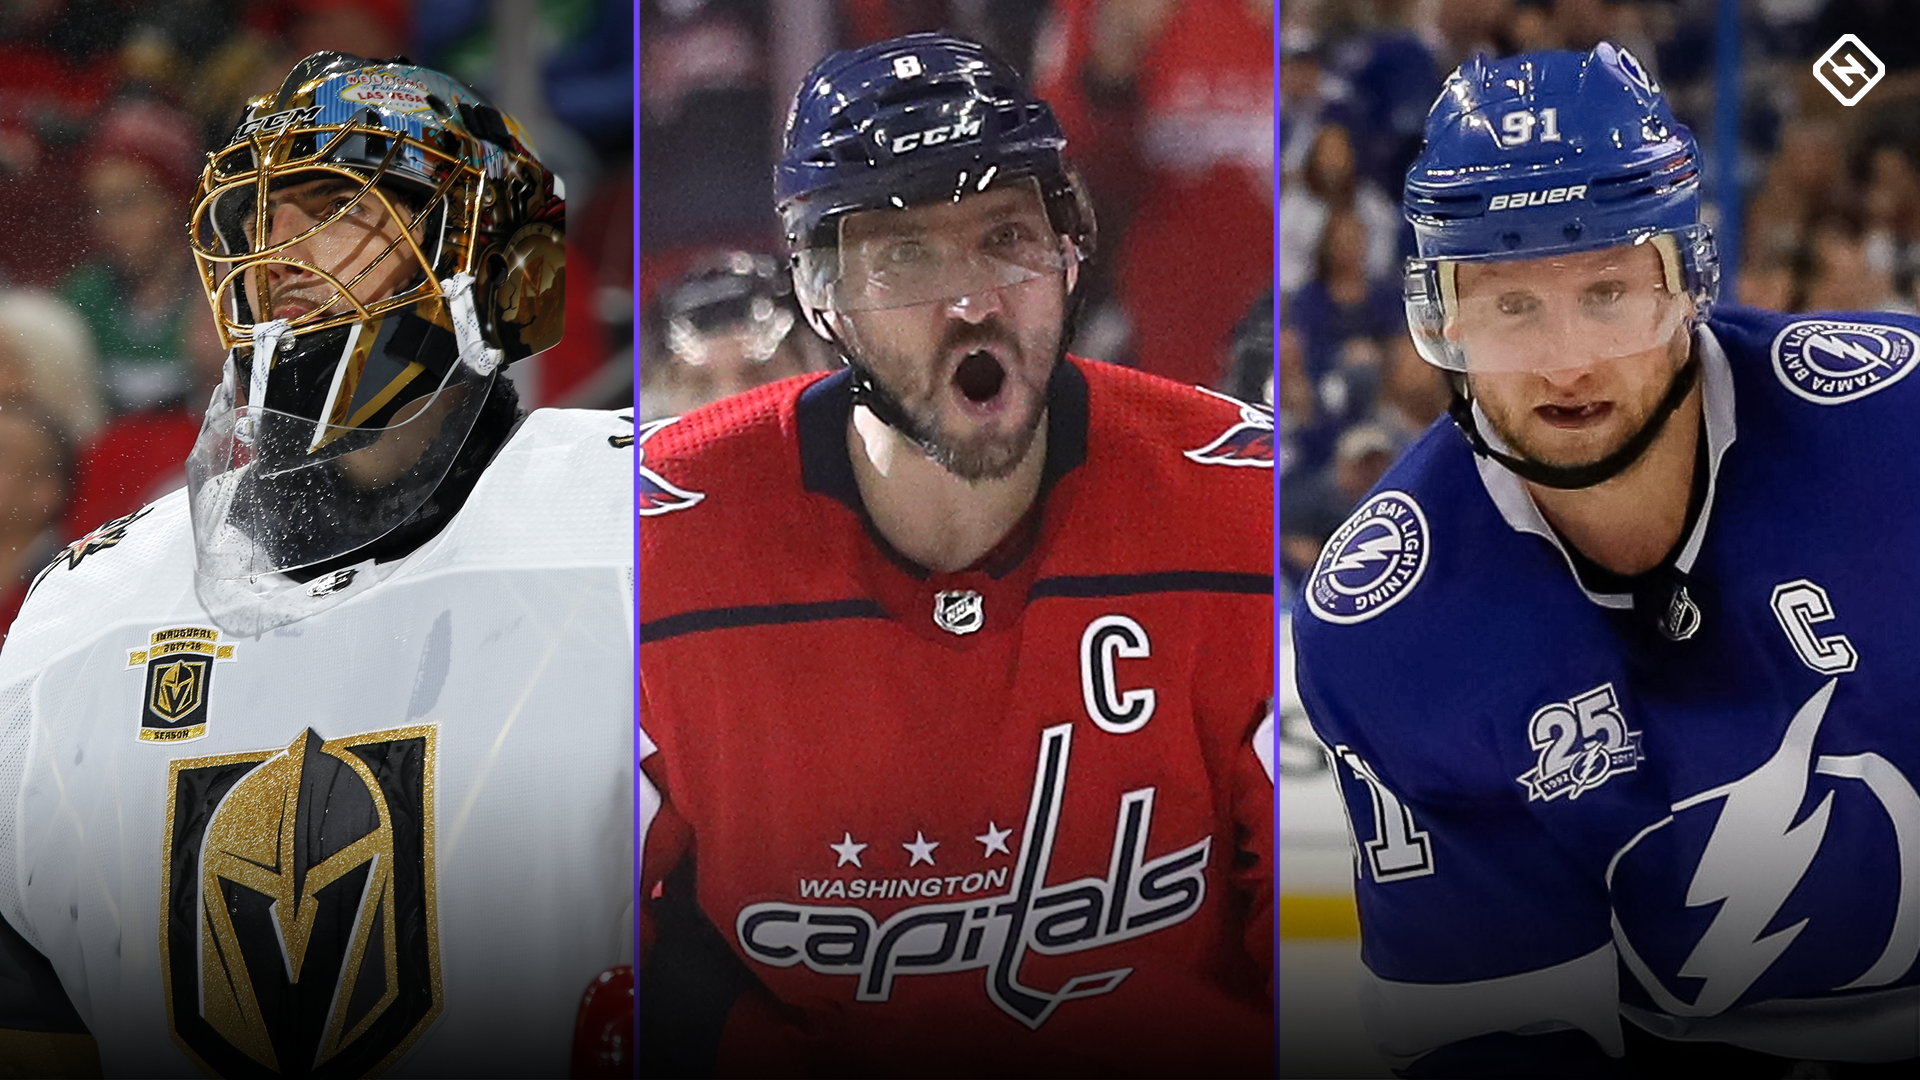 NHL playoffs 2018: Stanley Cup Final TV schedule, game times